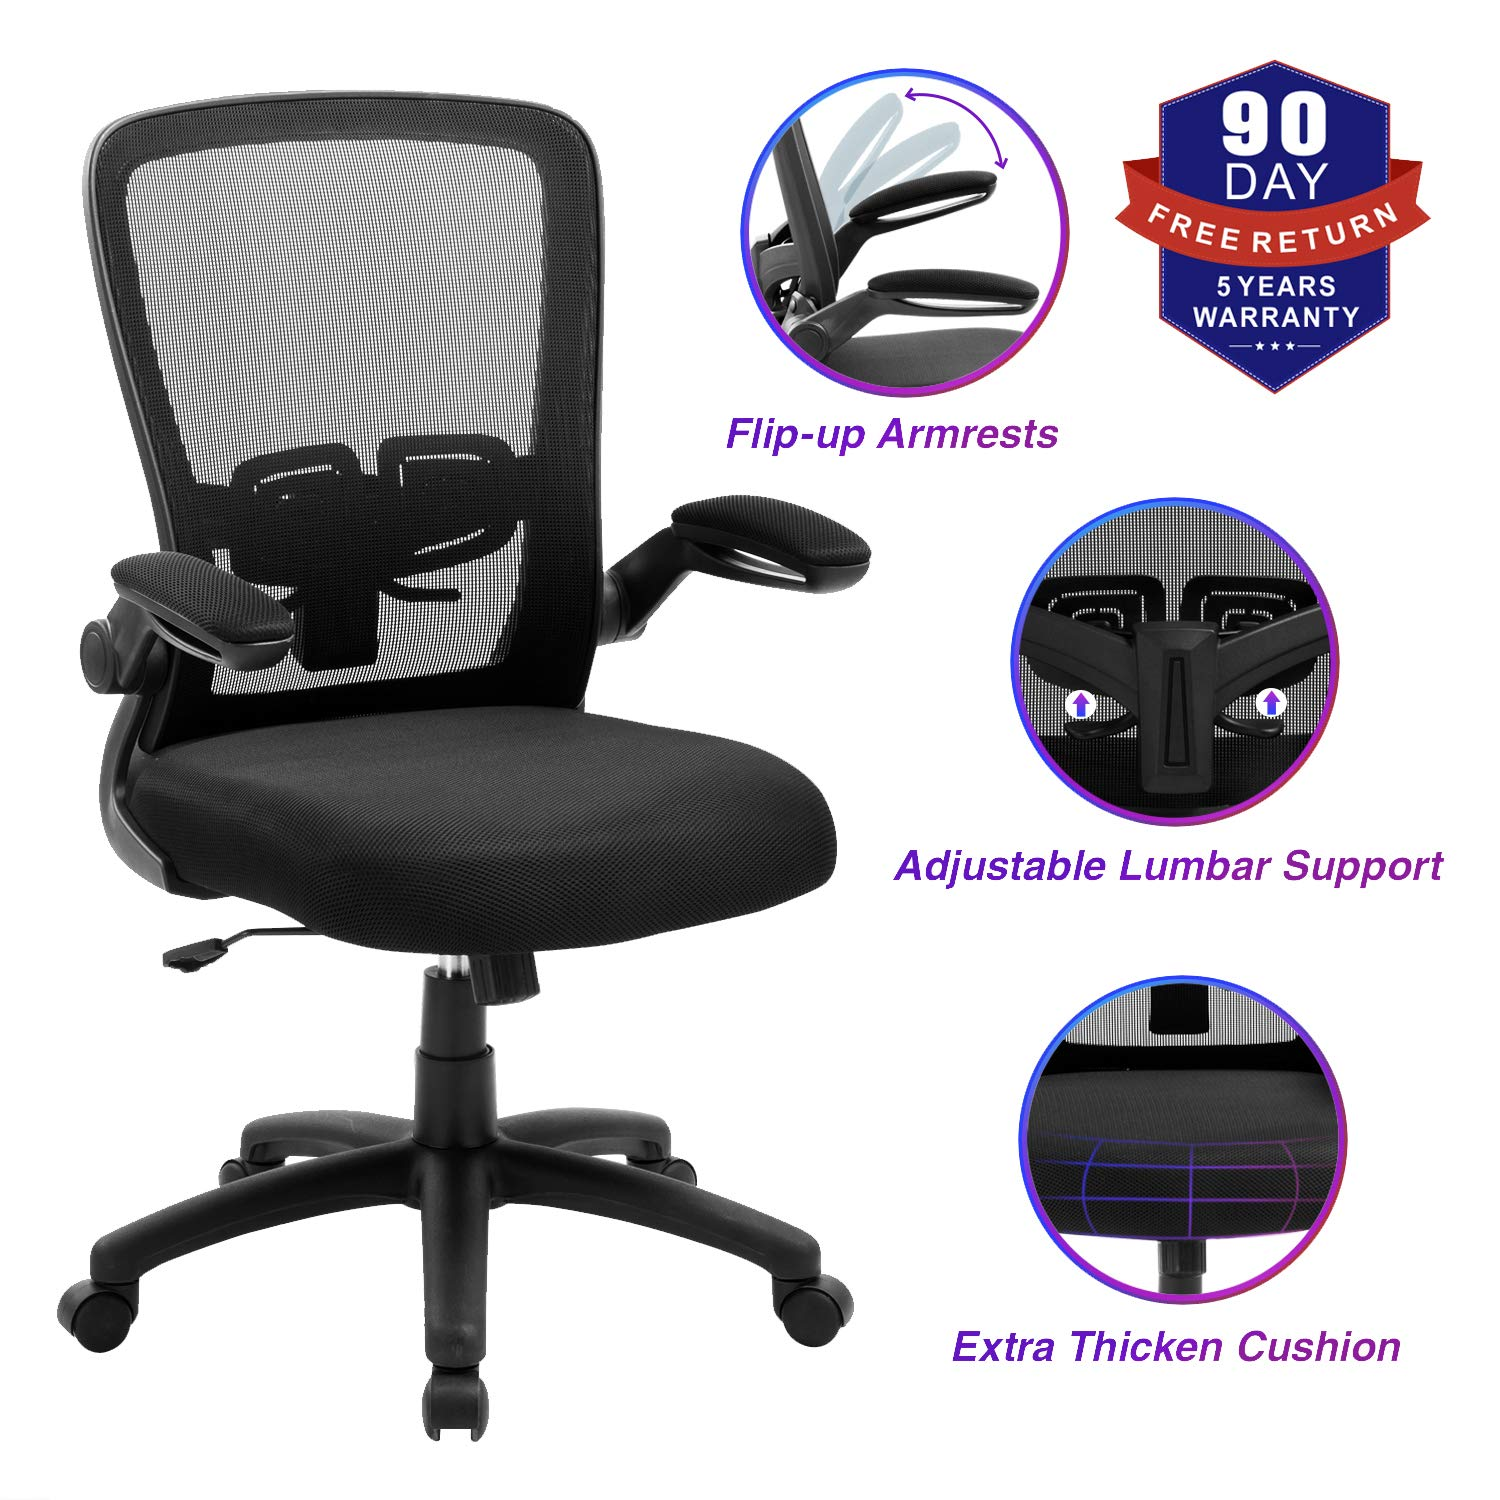 Office Chair, ZLHECTO Ergonomic Desk Chair with Adjustable Height and Lumbar Support, High Back Mesh Computer Chair with Flip up Armrests for Conference Room - 300lb Weight Capacity, Black